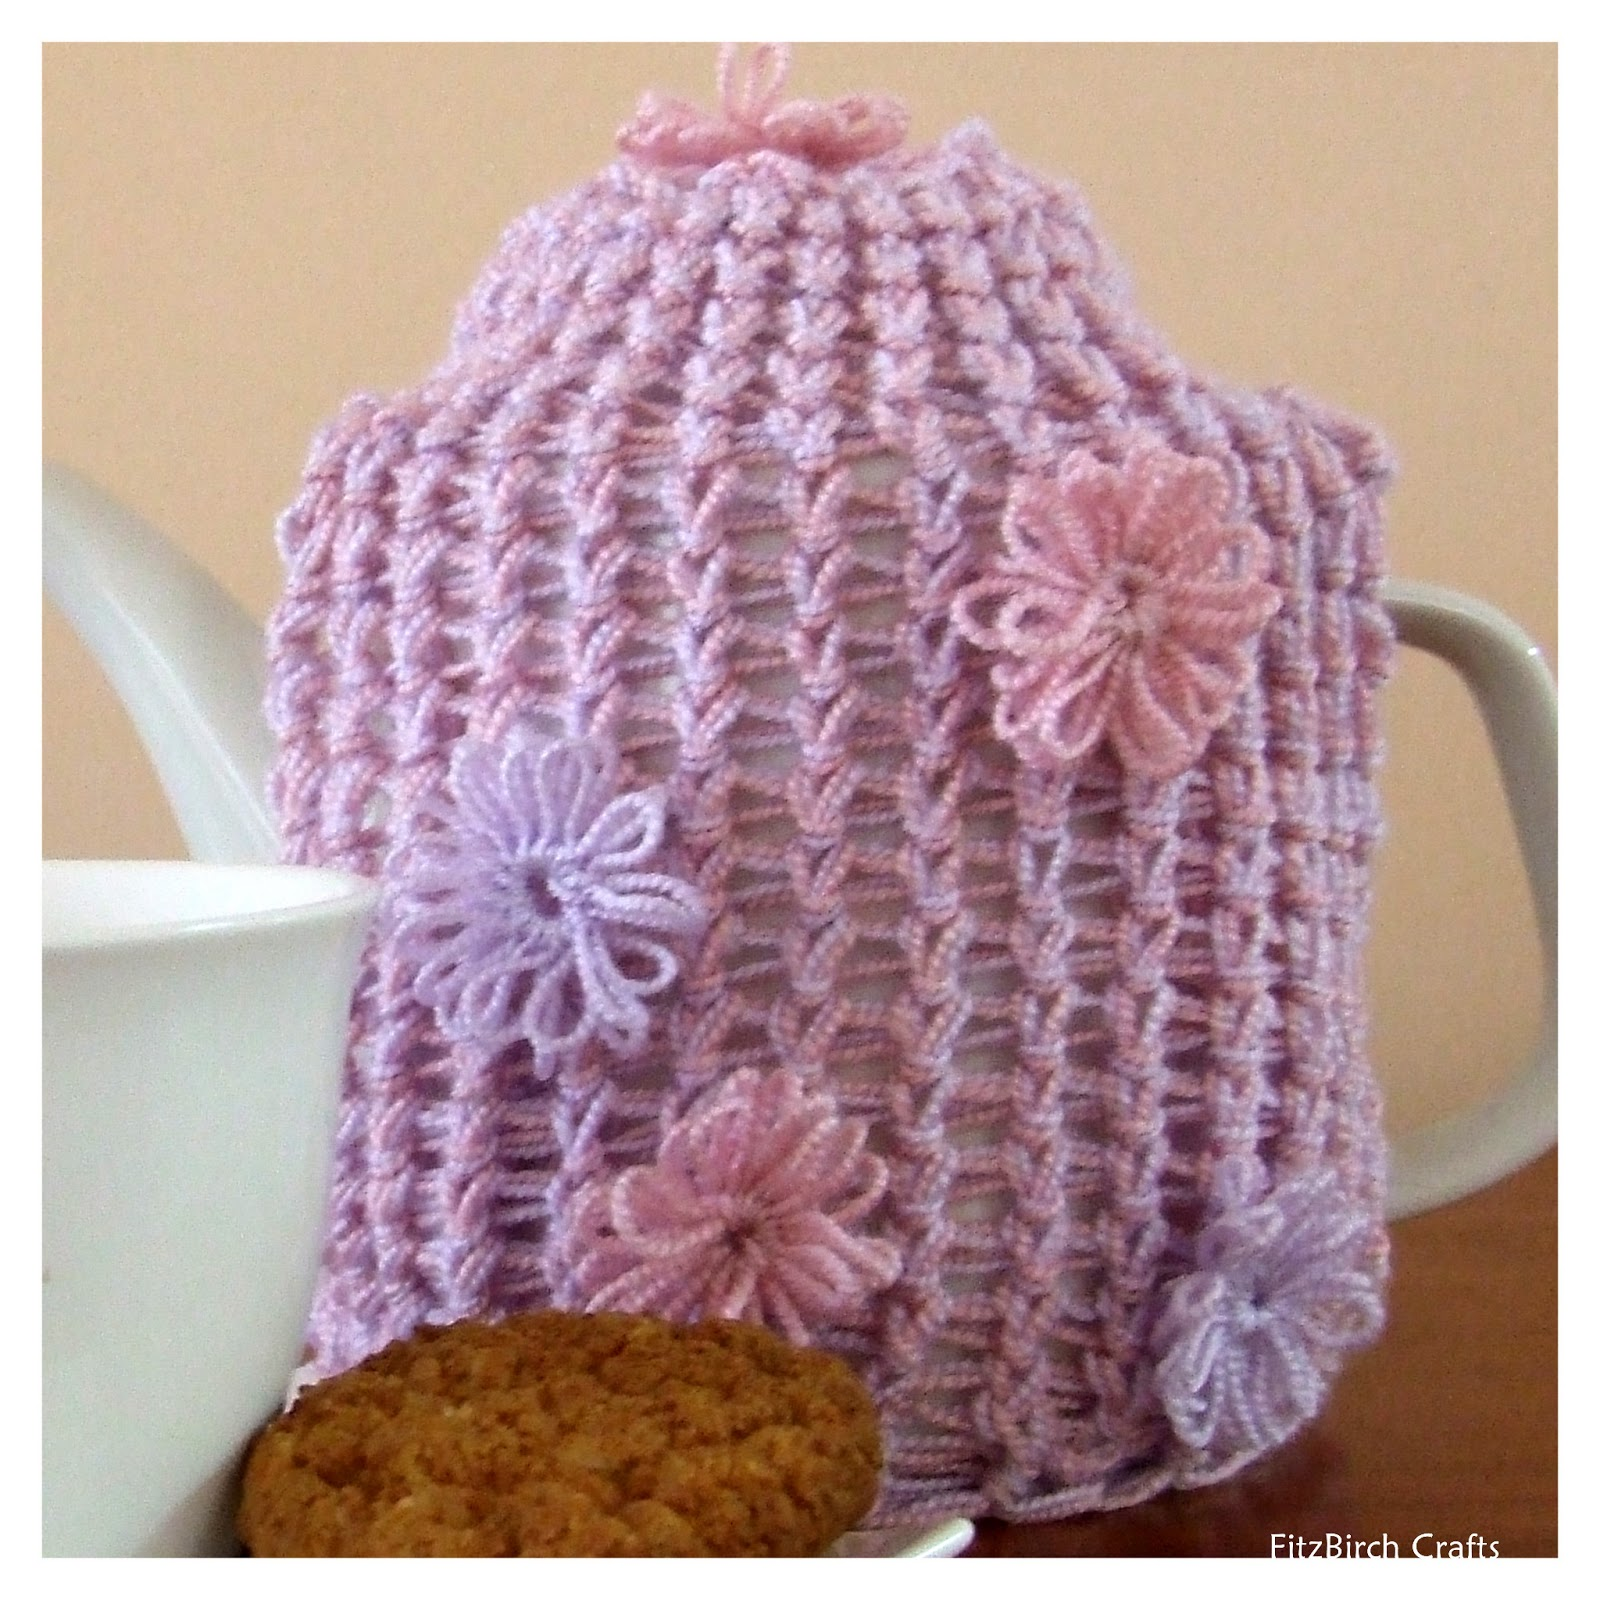 Knitting Loom Patterns : Fitzbirch crafts loom knit tea cosy